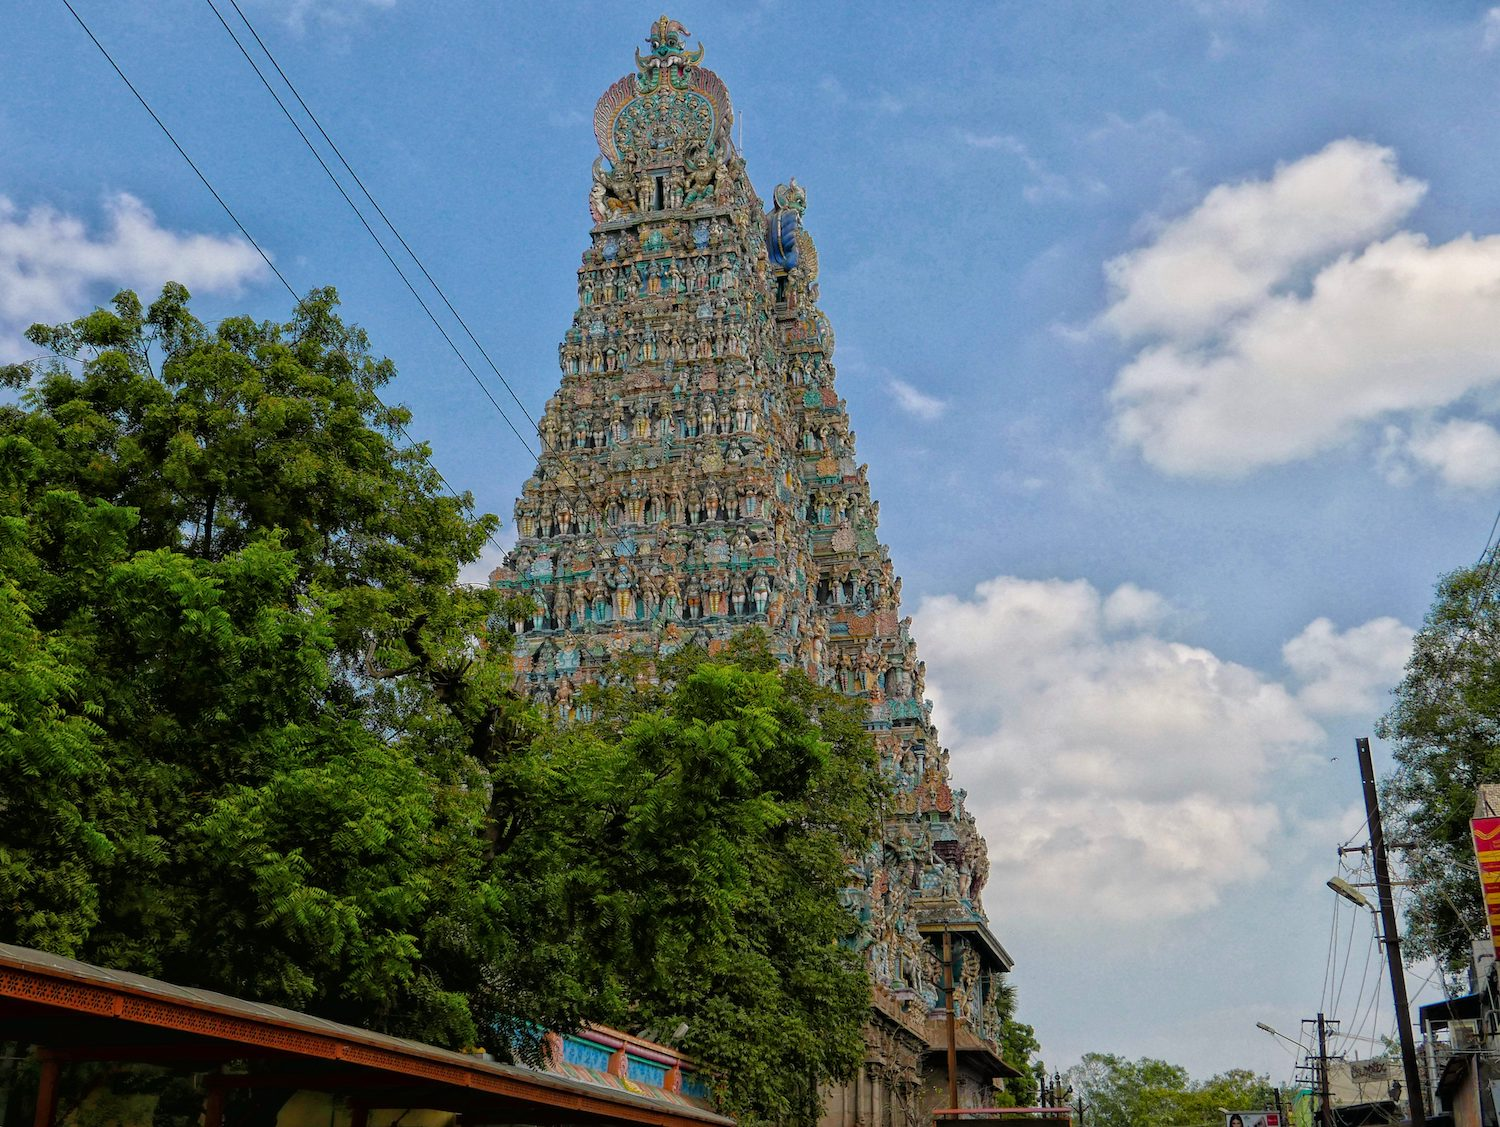 Madurai East tower